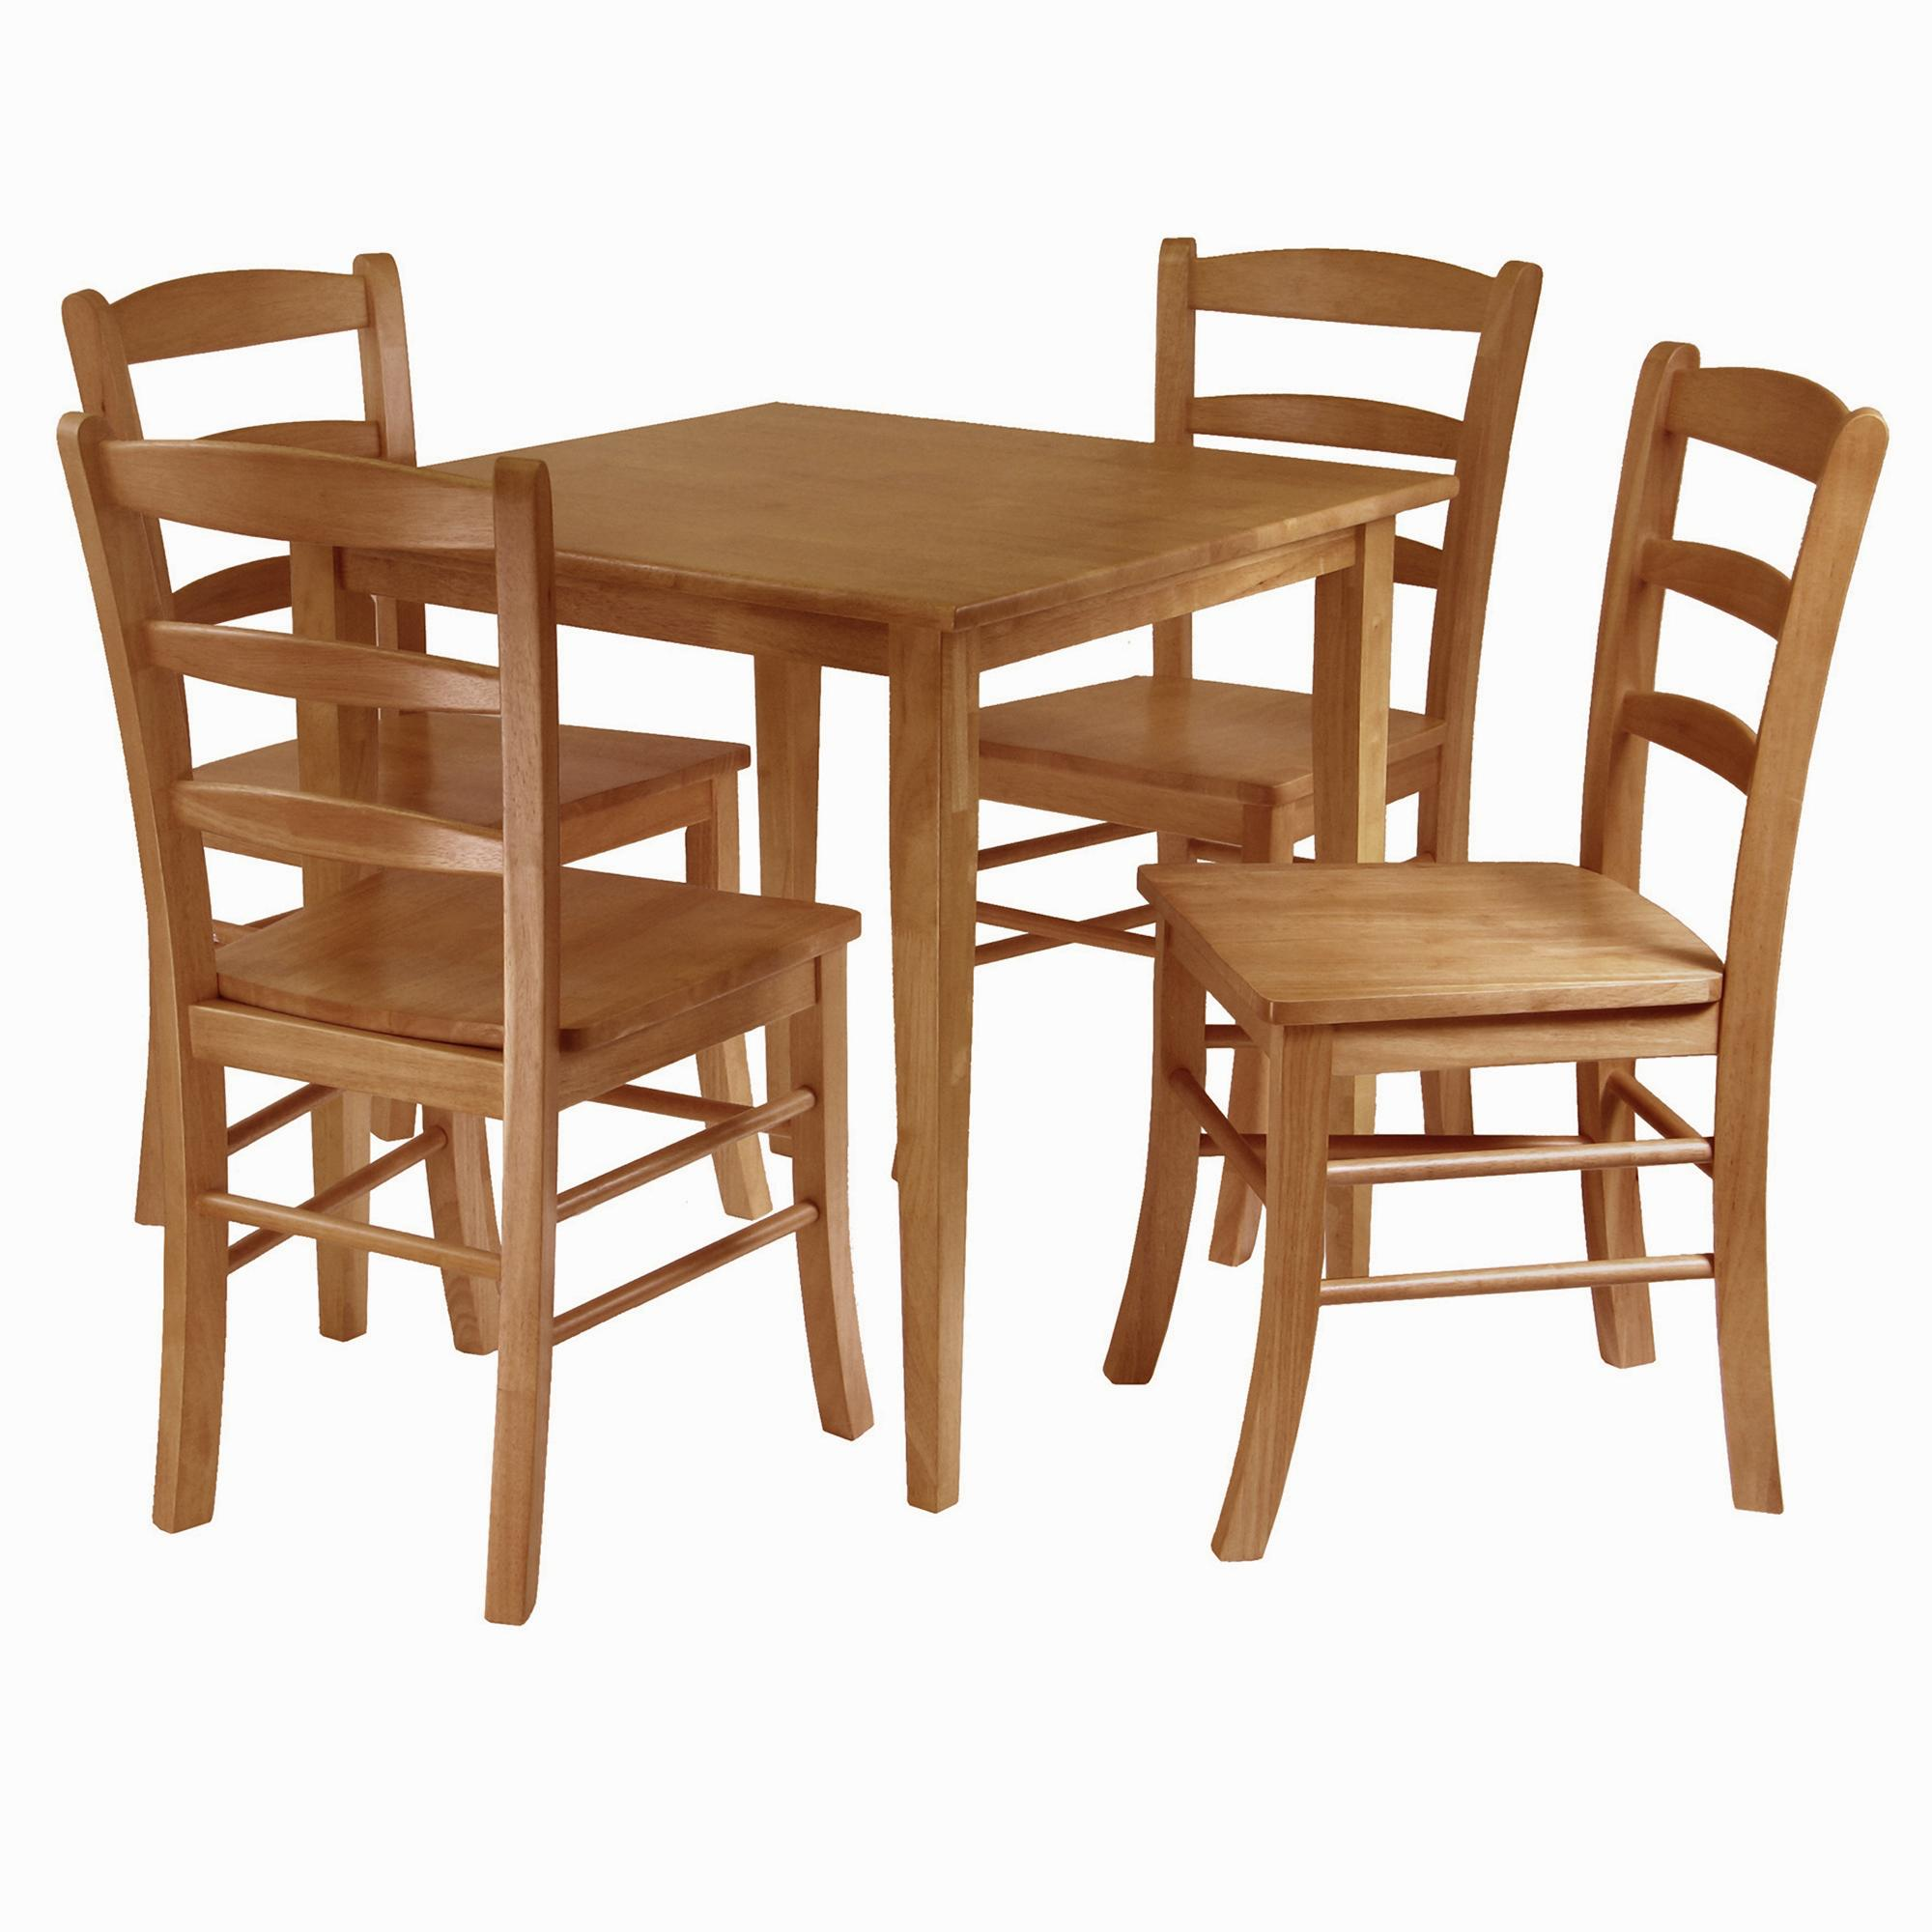 Oak Table And Chairs For Kitchen Amazon winsome groveland 5 piece wood dining set light oak view larger workwithnaturefo